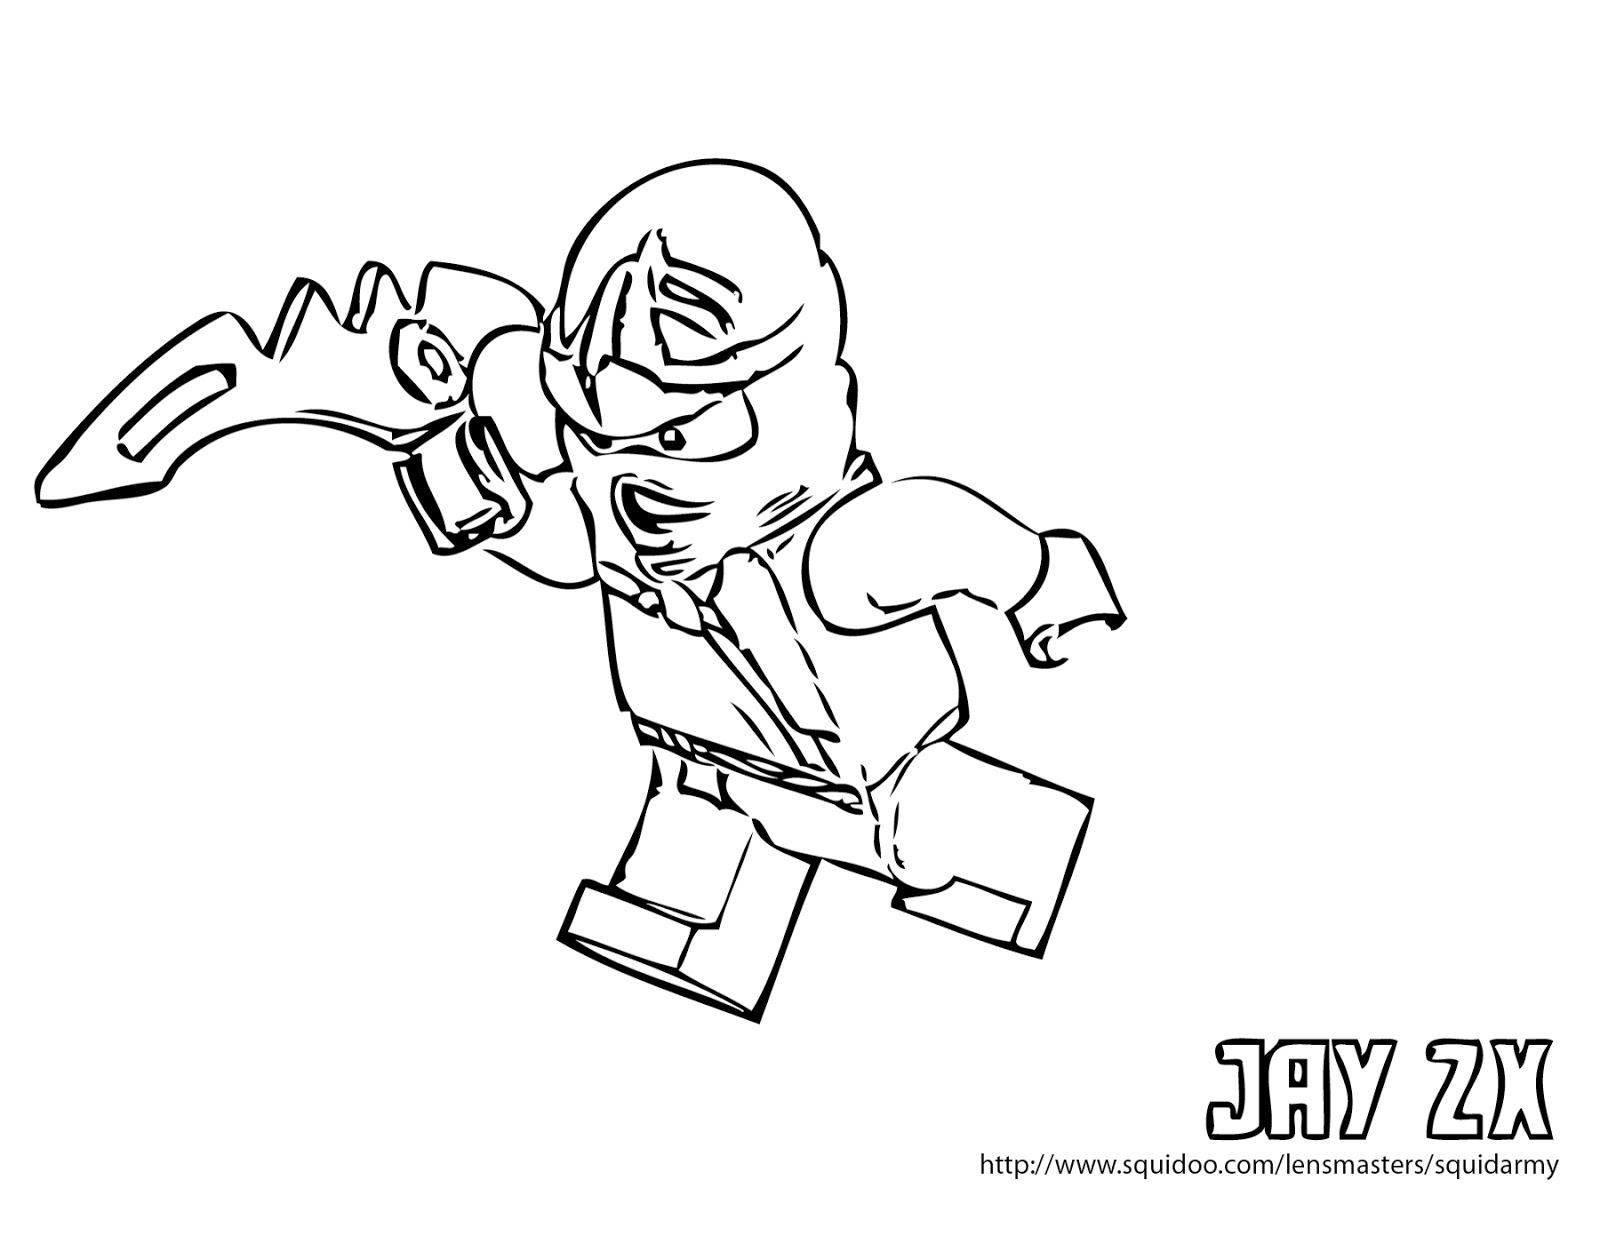 Book Black And White clipart - Lego, White, Black, transparent ... | 1236x1600